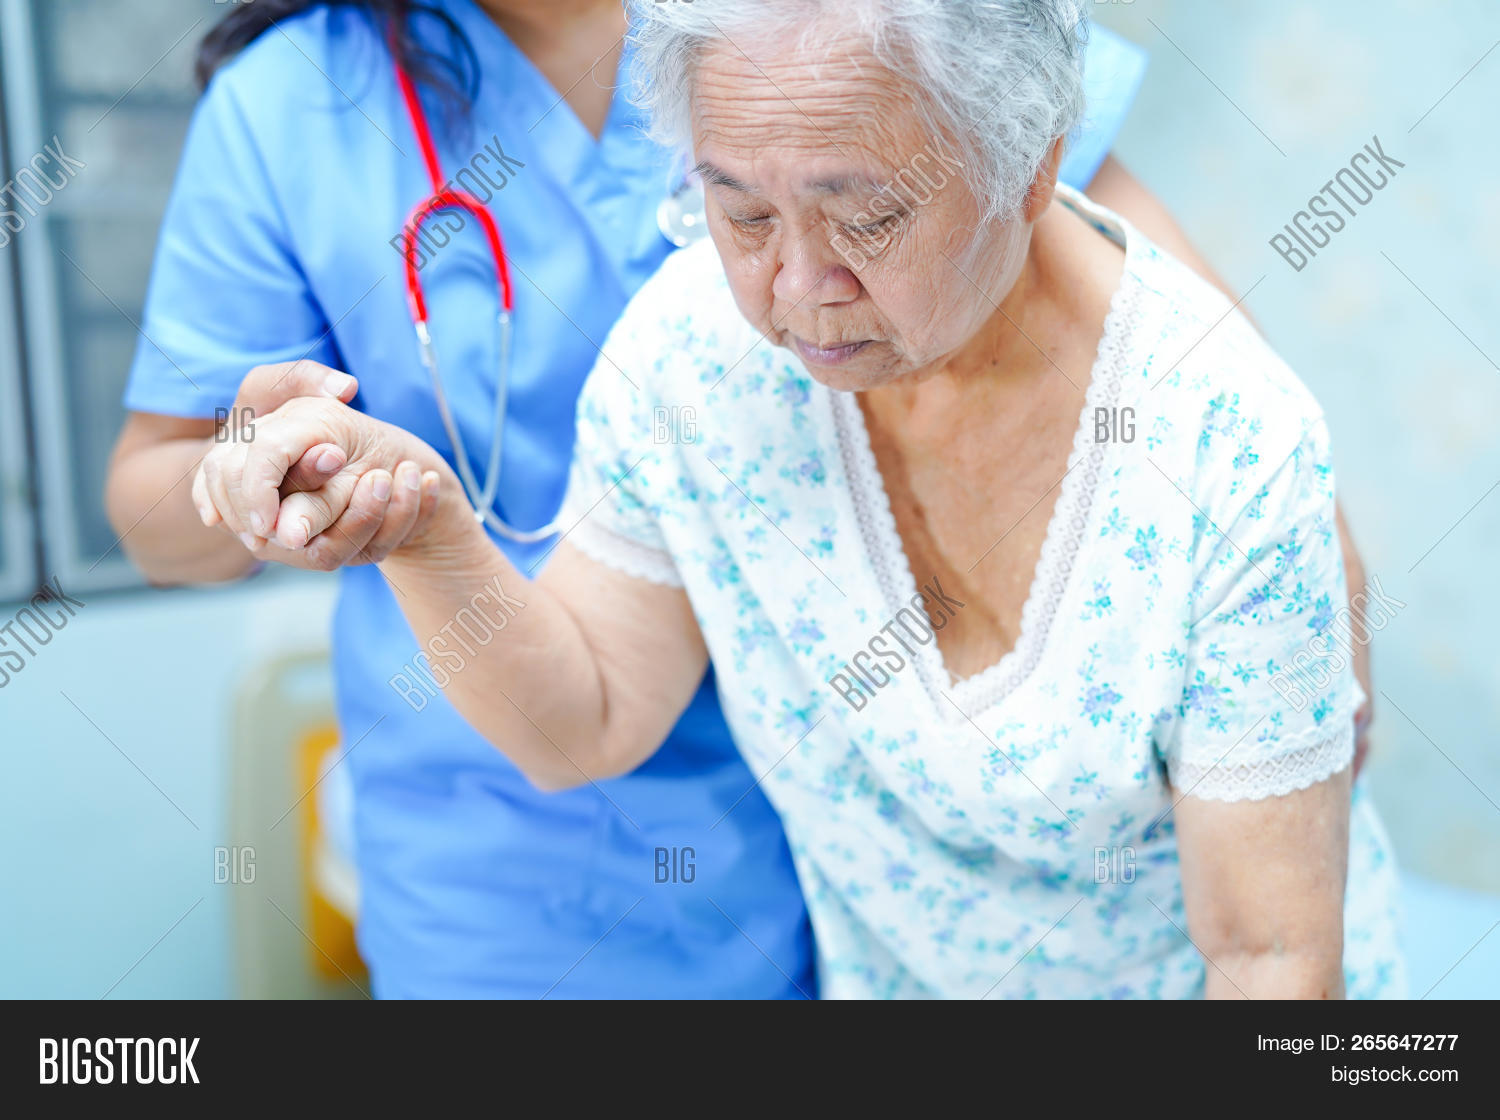 Asian Nurse Physiotherapist Doctor Care, Help And Support Senior Or Elderly Old Lady Woman Patient G